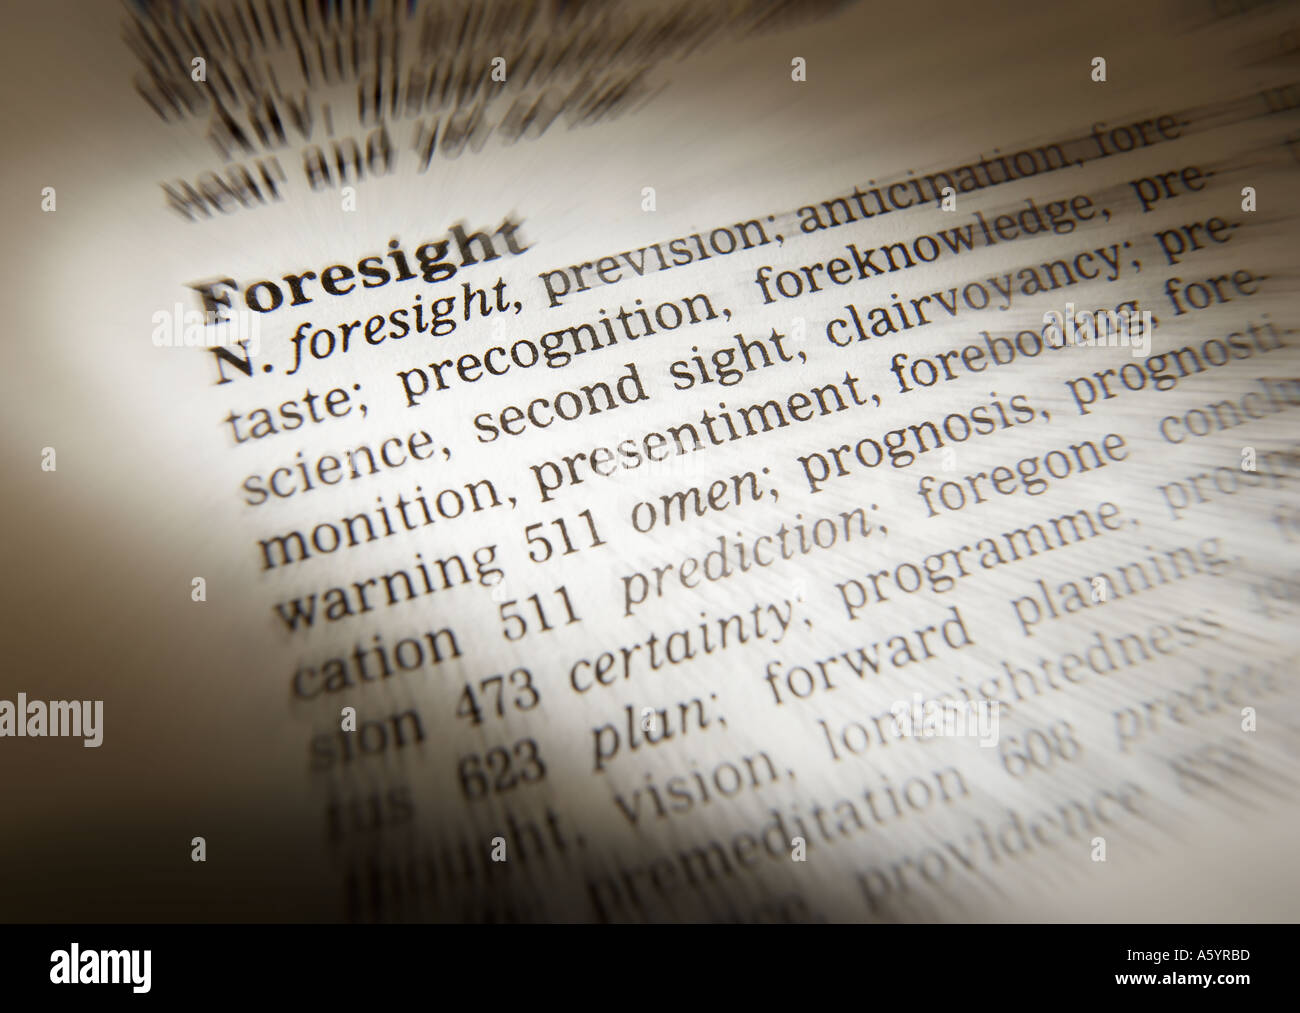 THESAURUS PAGE SHOWING DEFINITION OF WORD FORESIGHT